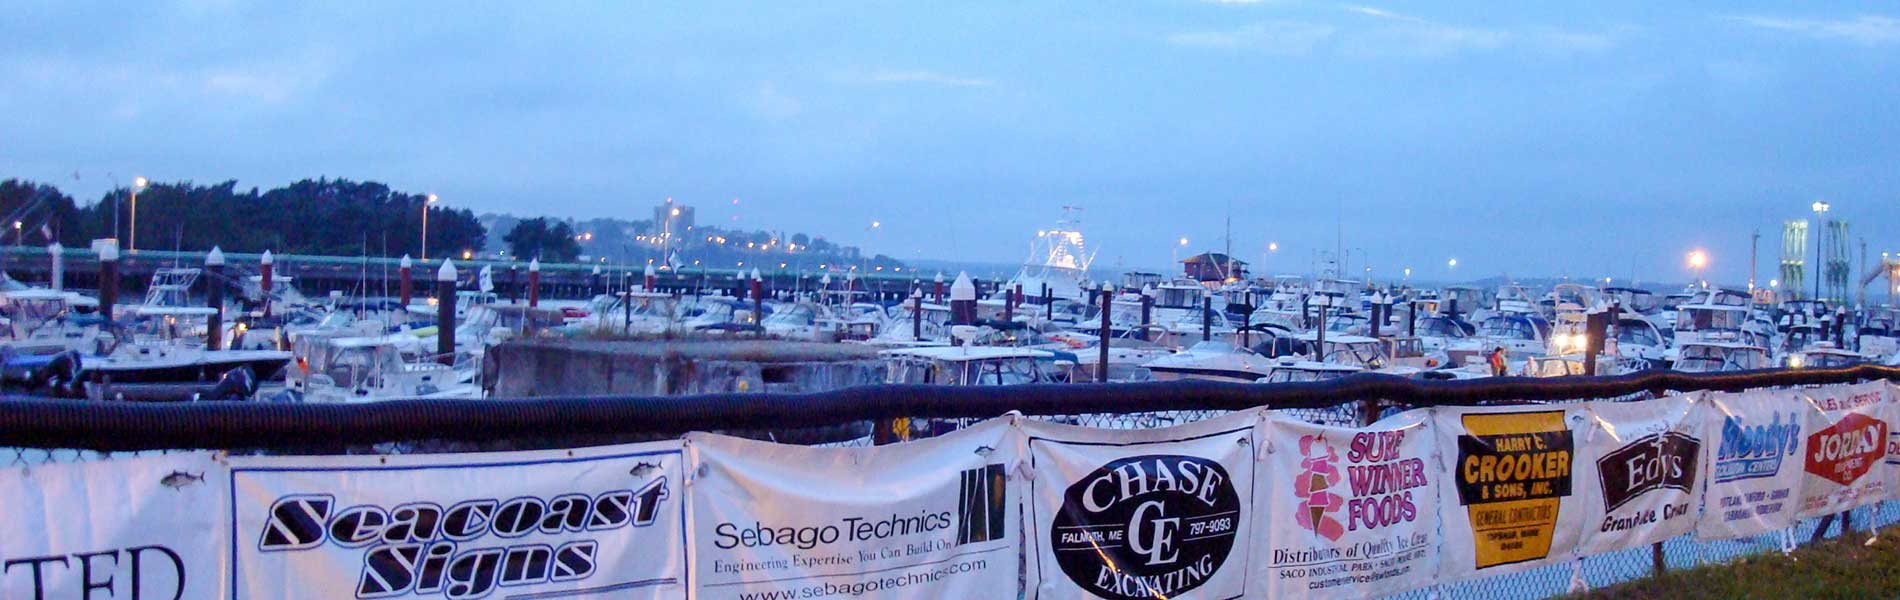 Sponsor Banners at Spring Point Marina